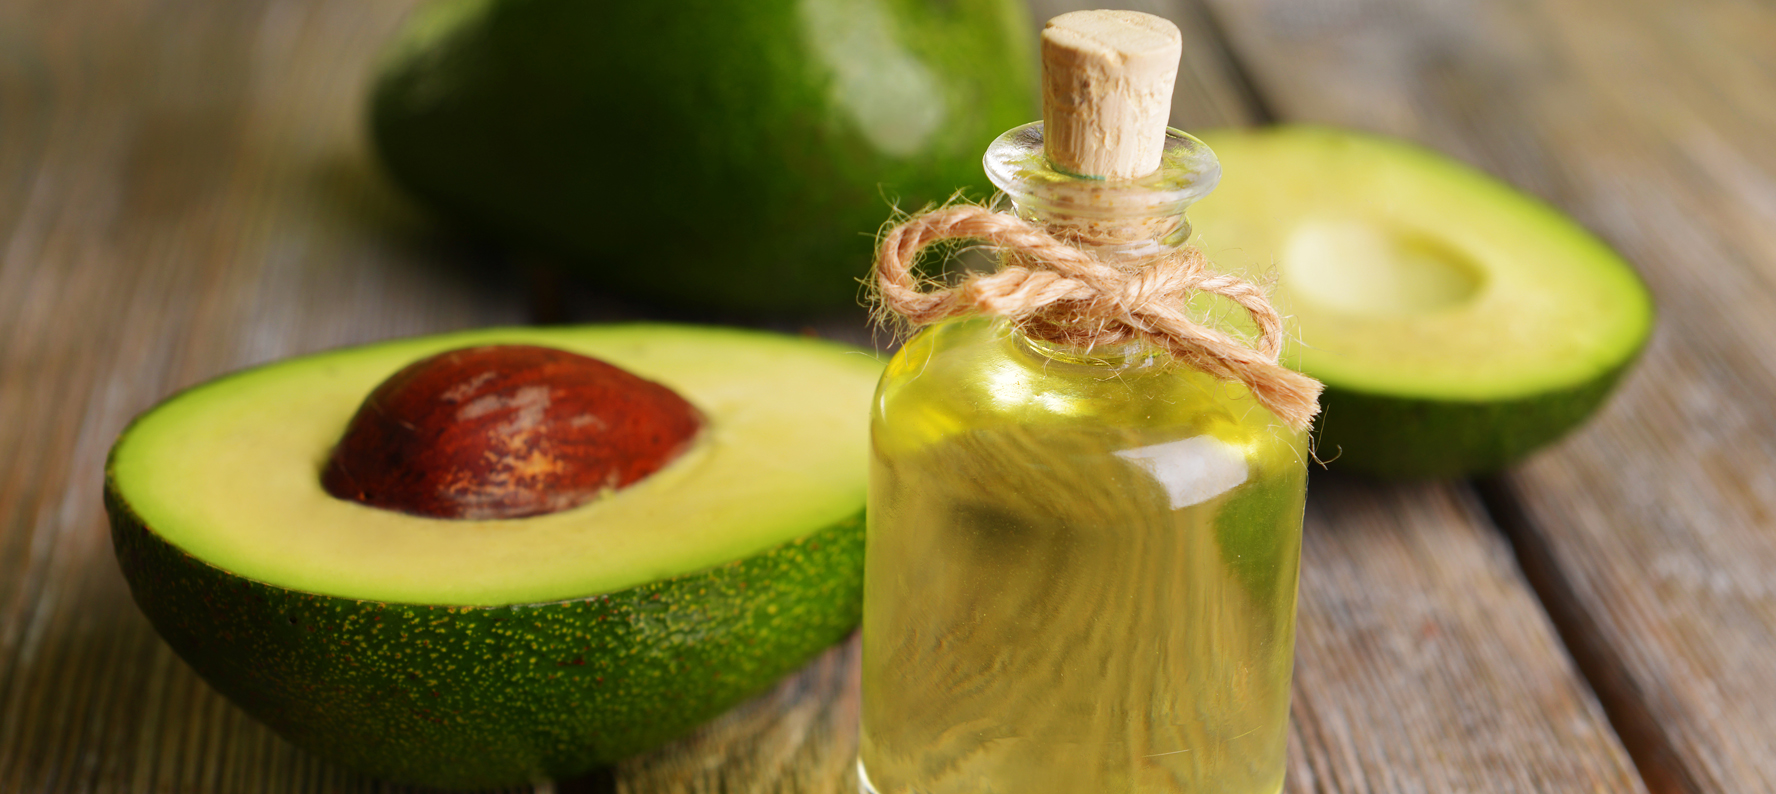 Avocado oil is used in natural skin care products for its numerous properties.